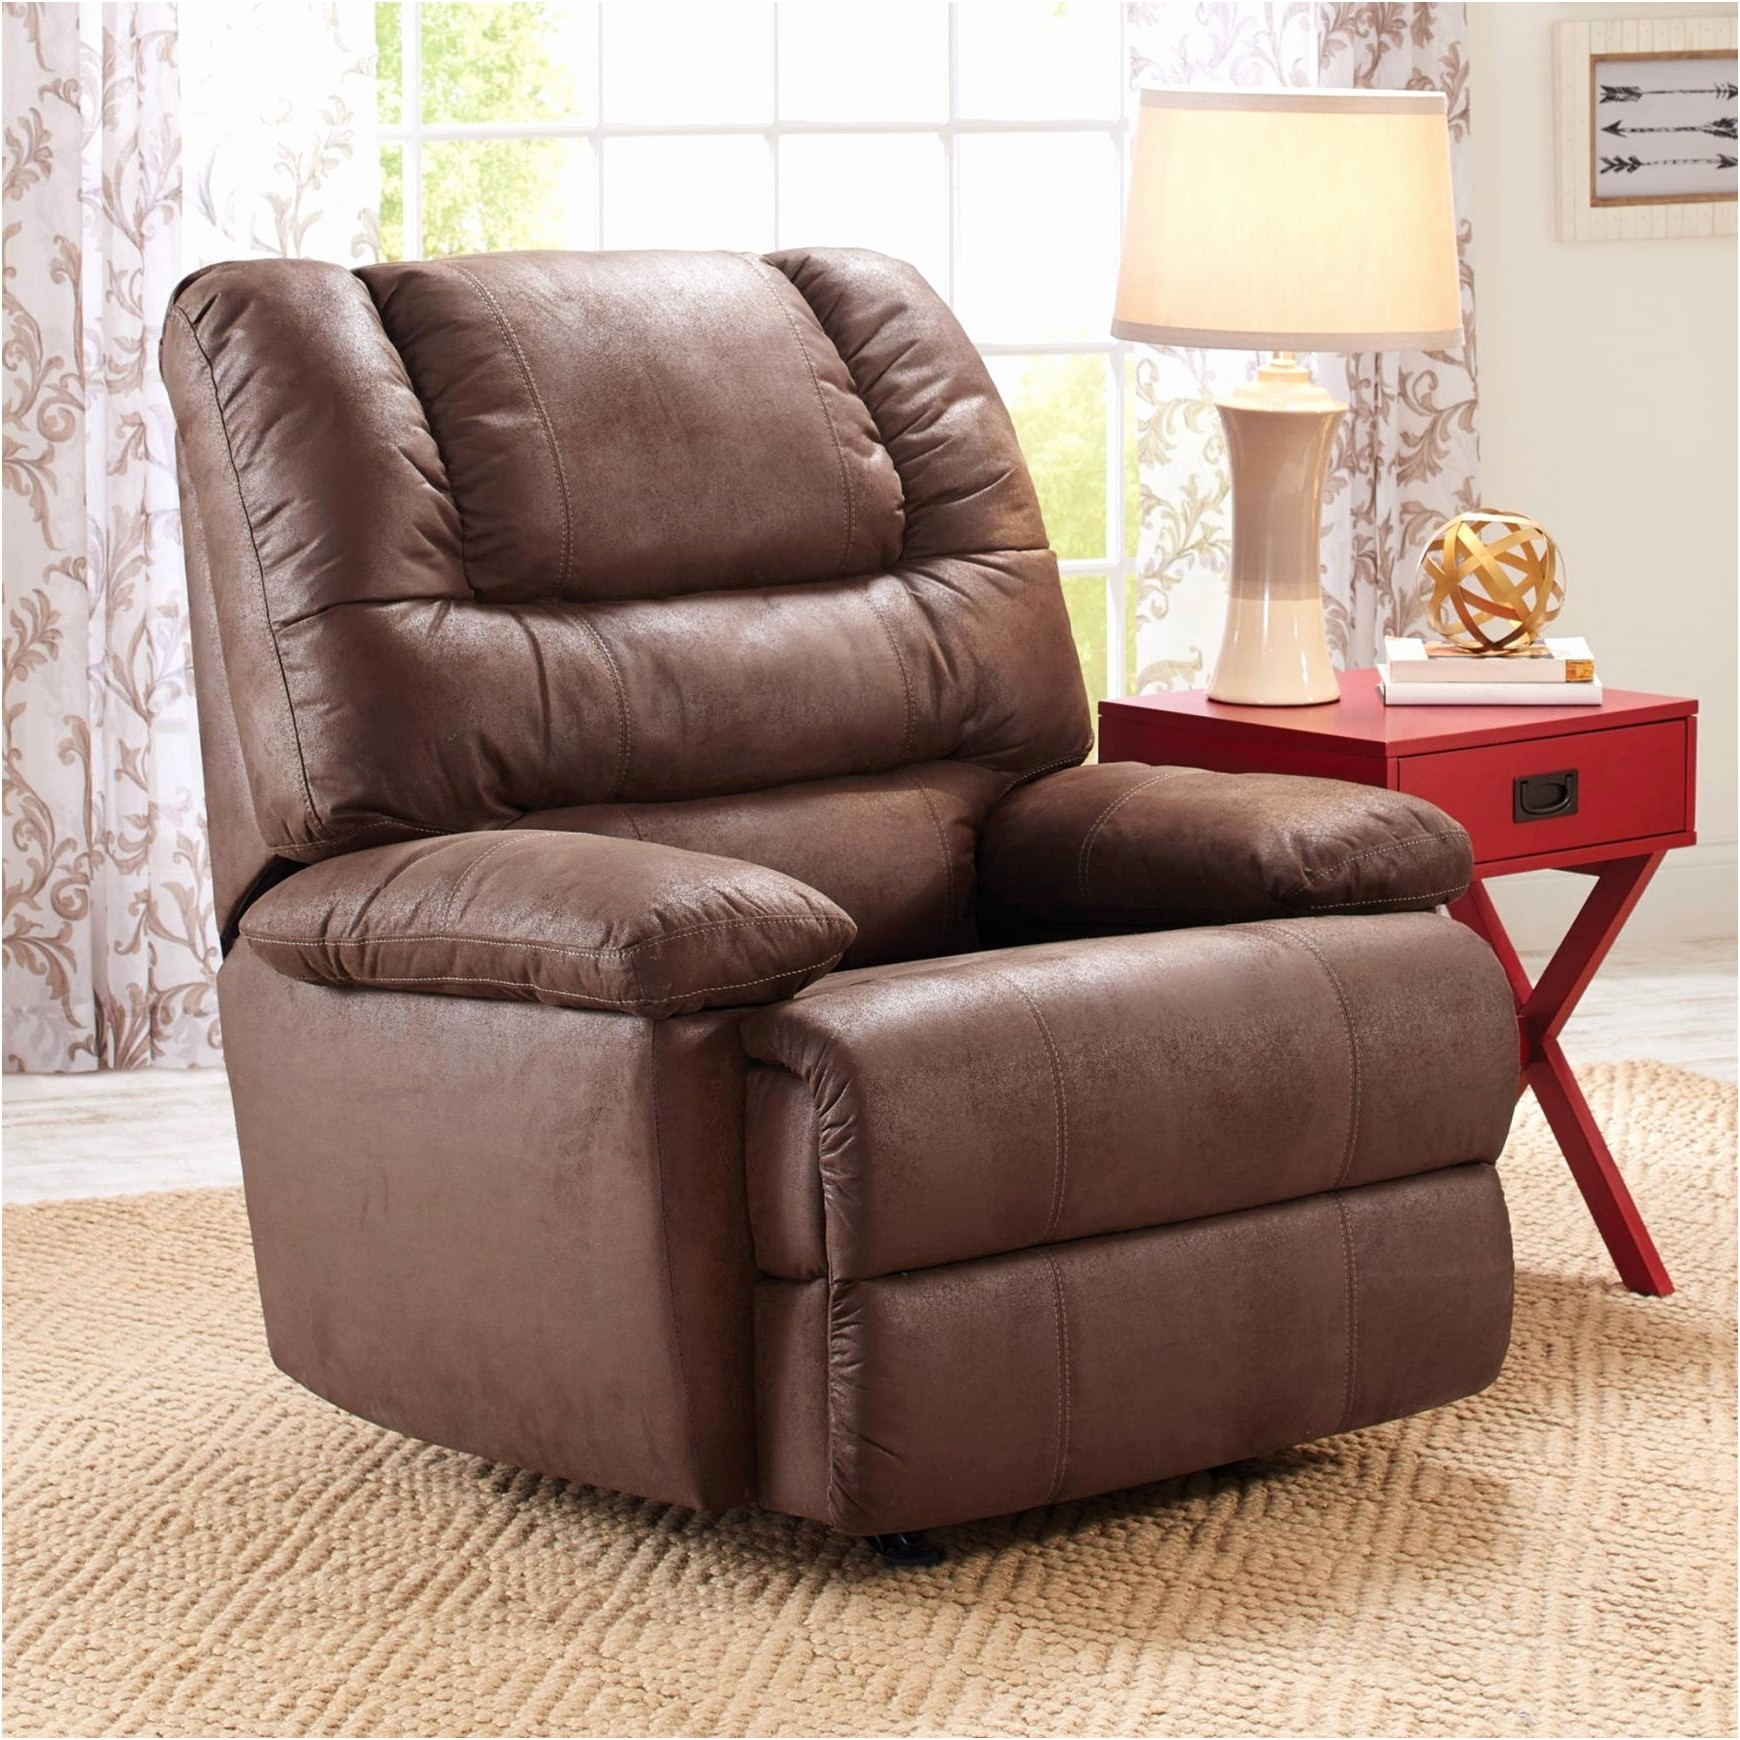 Best Online Sofa Store: Fresh 399 Sofa Store Photo